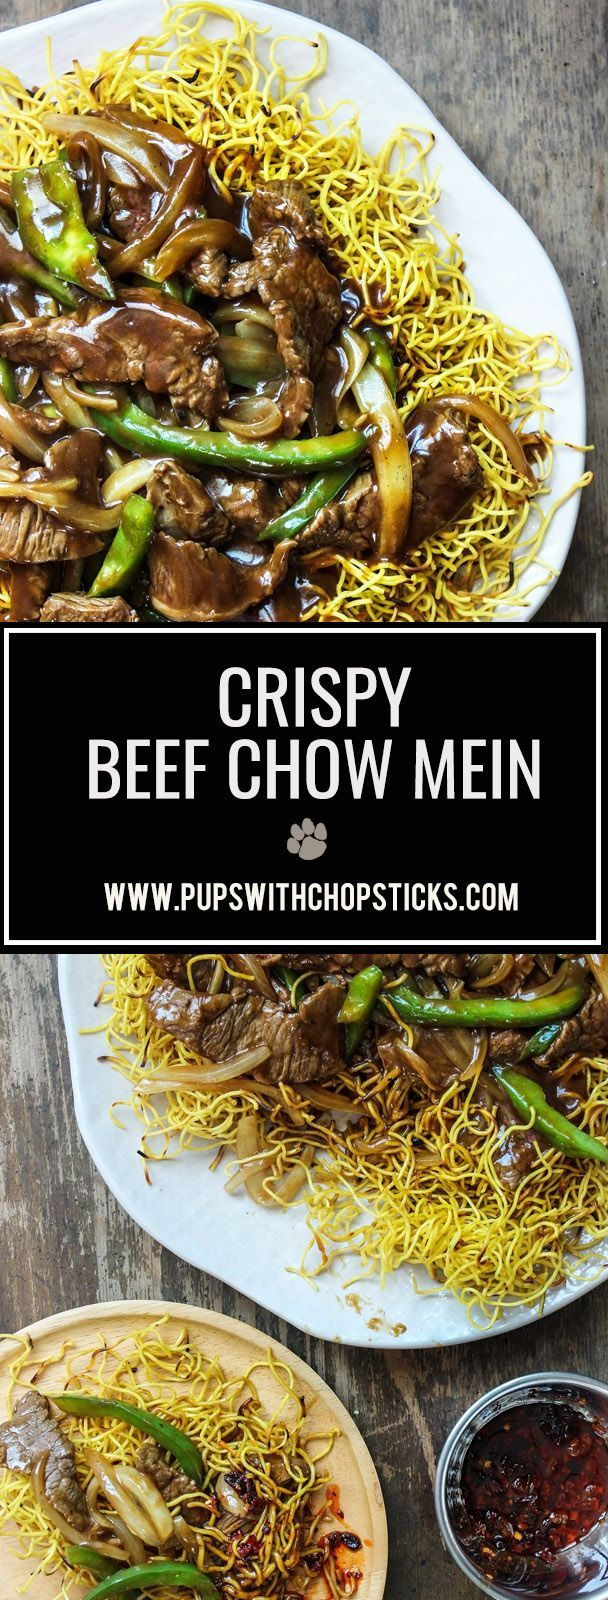 Cantonese beef chow mein is crispy, saucy and loaded with beef, peppers and onions on top. A very common takeout dish that's delicious and easy to re-create right in the comfort of your home!